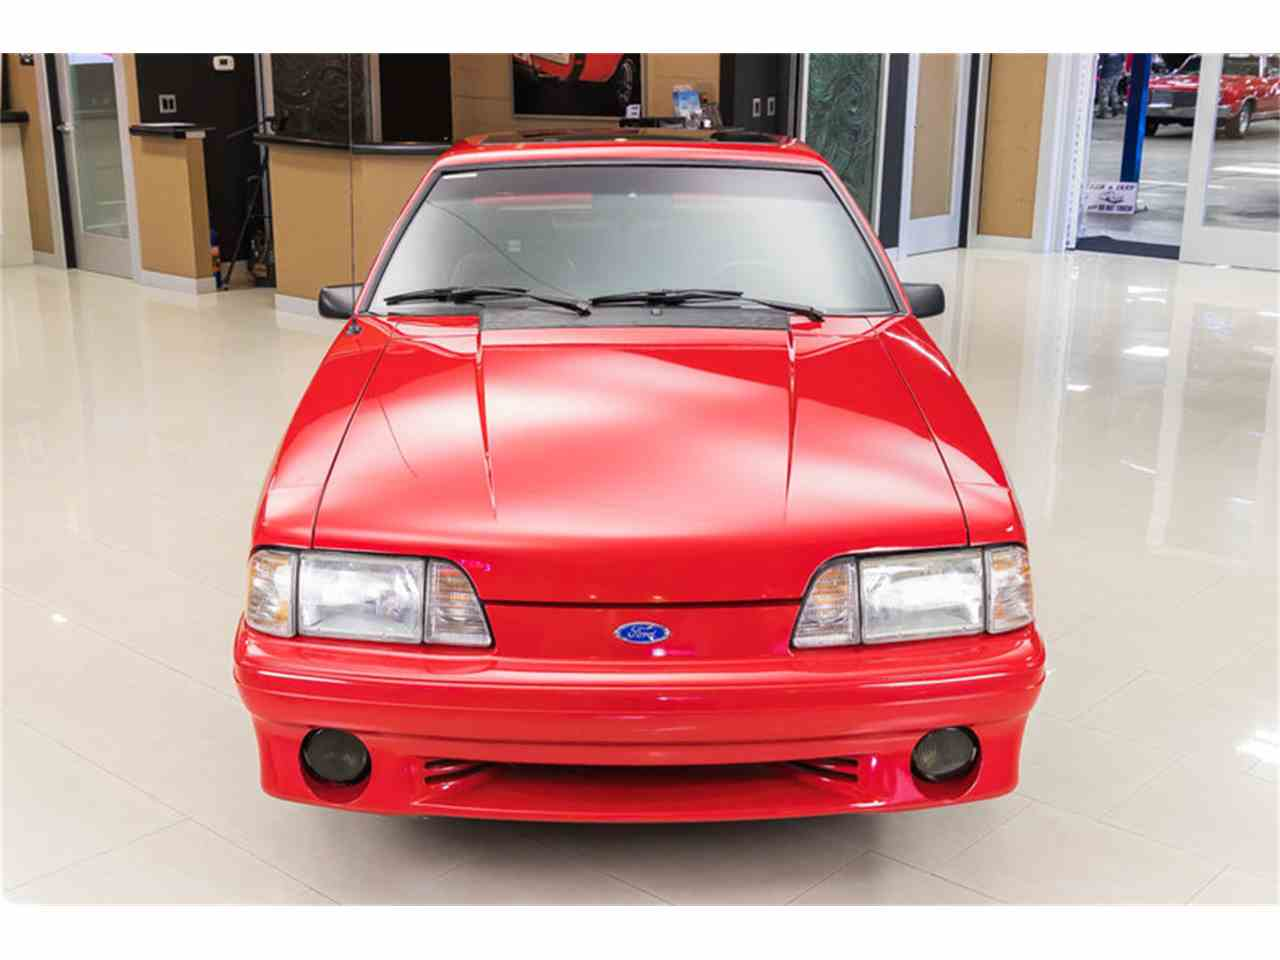 1990 Ford Mustang Gt For Sale Classiccars Com Cc 959782